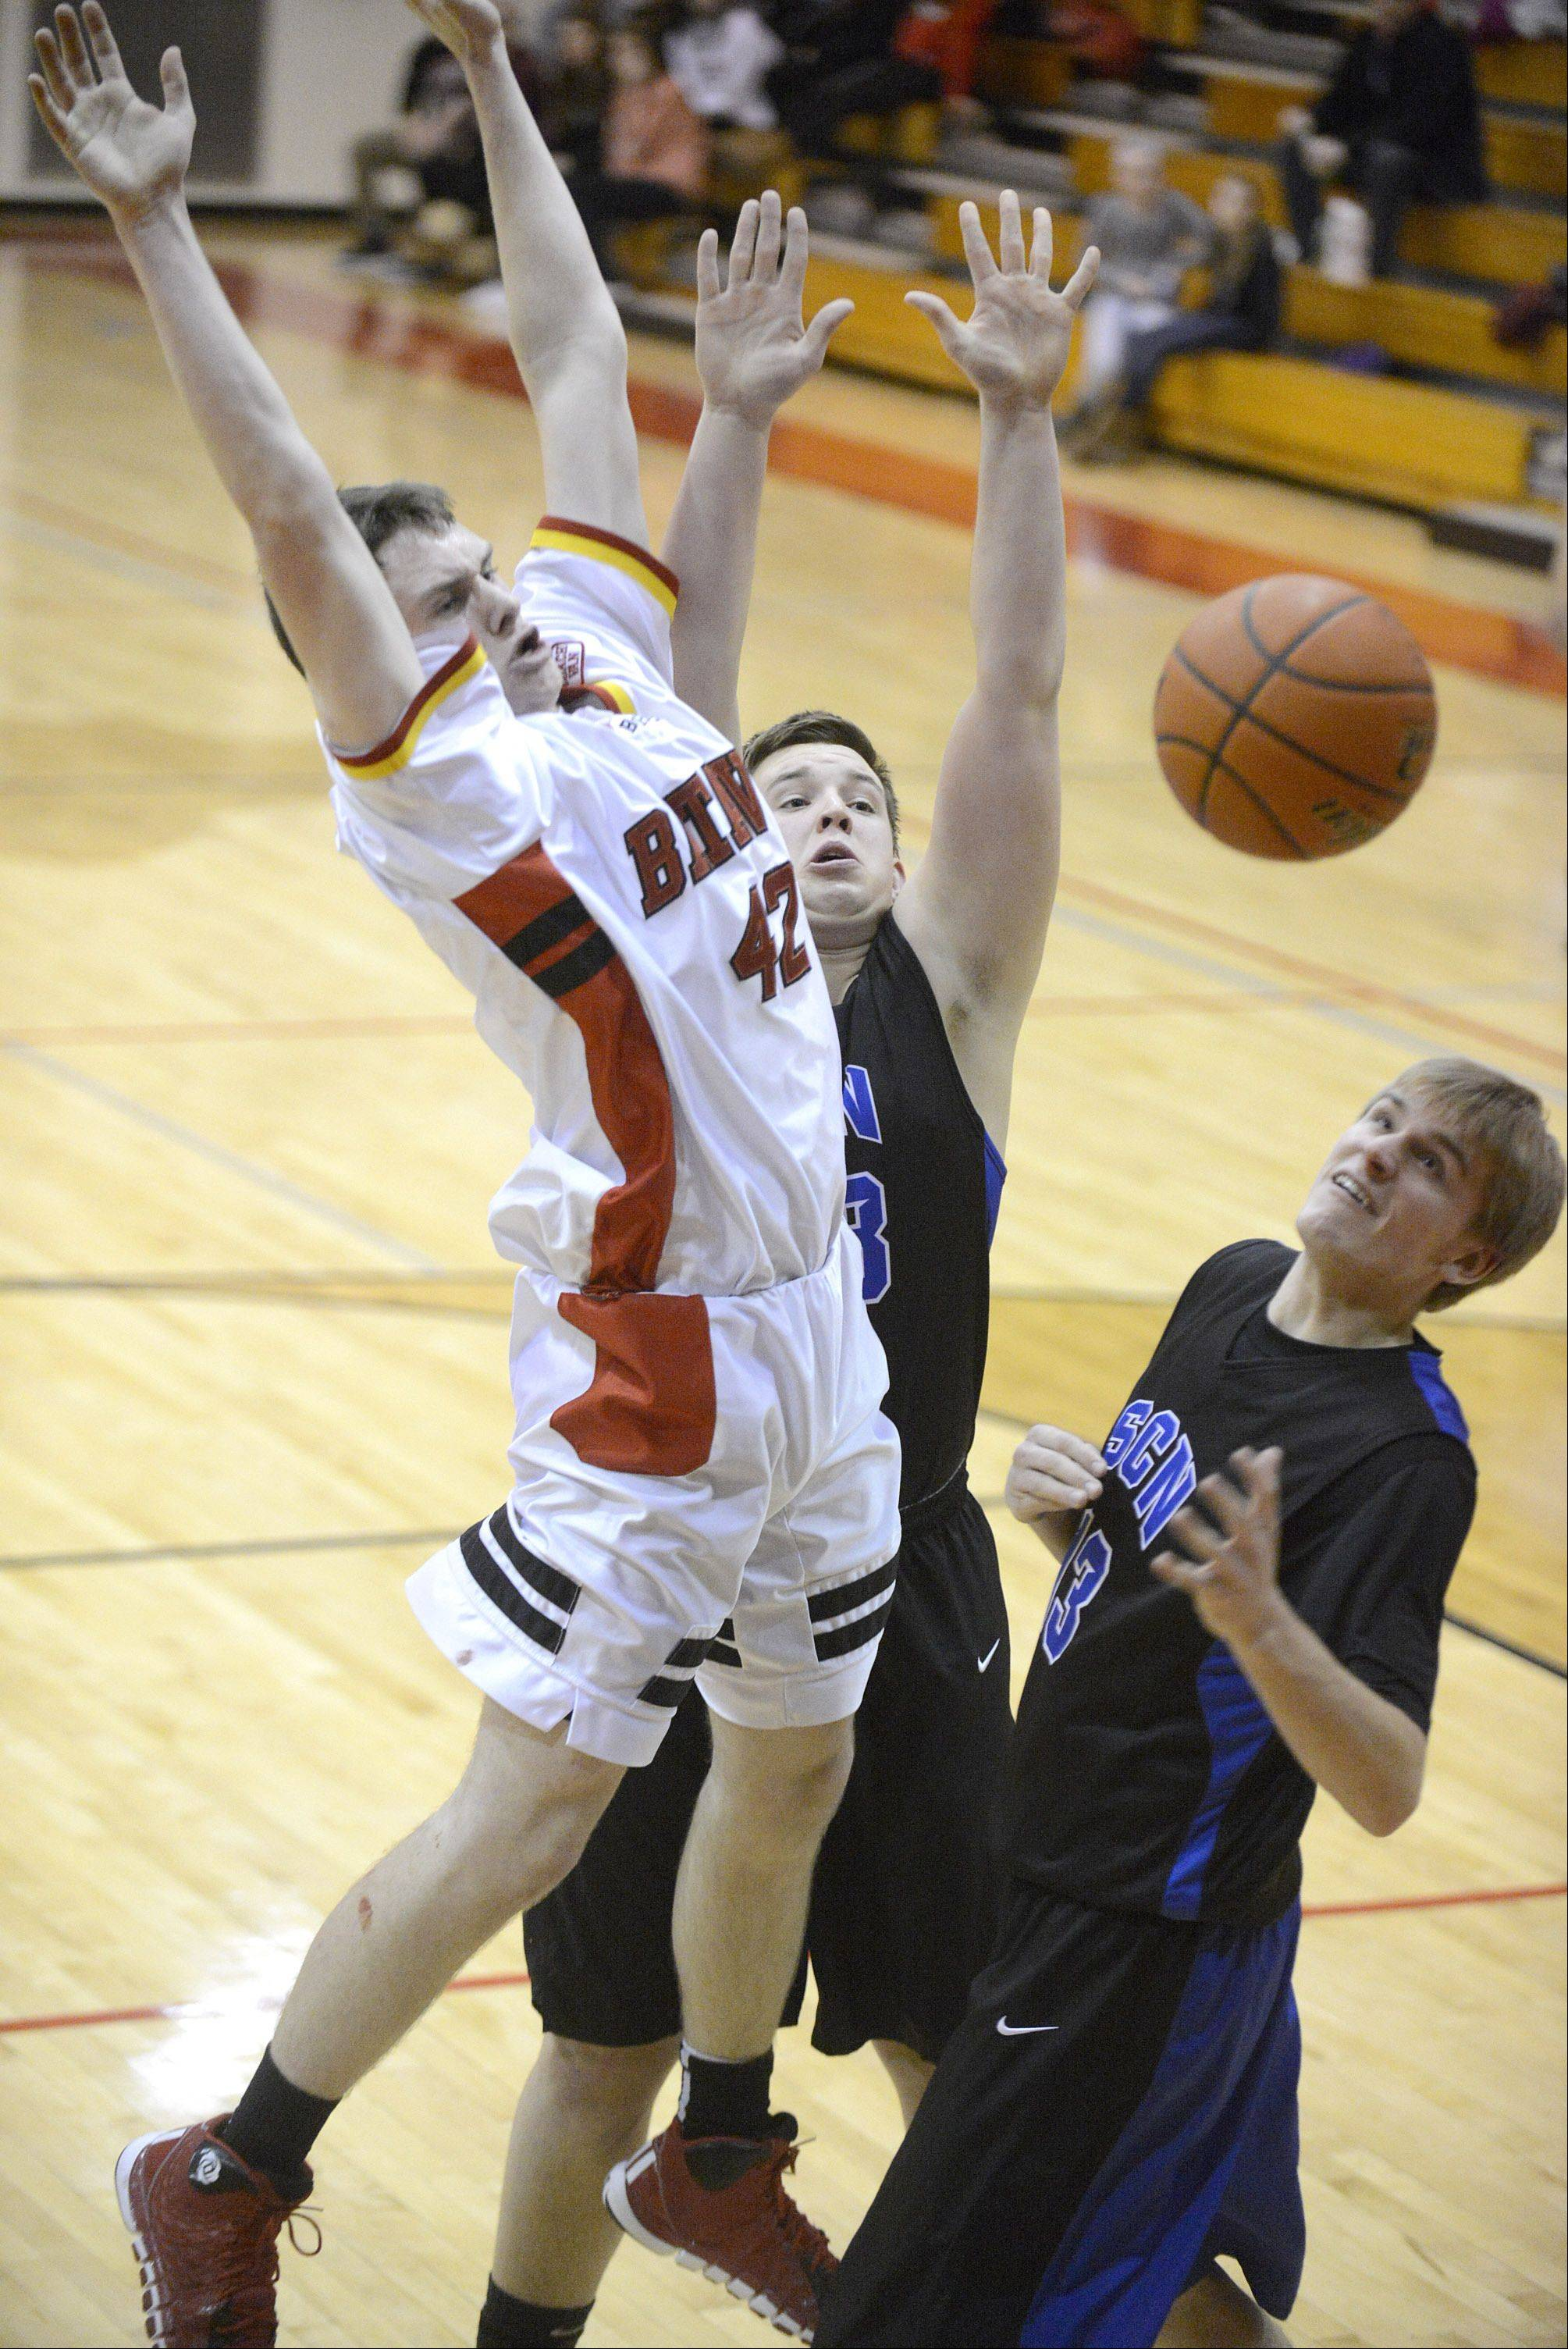 Batavia's Ryan Olson goes up for the hoop near St. Charles North's Camden Cotter (center) and David Pozna (right) in the third quarter on Friday.